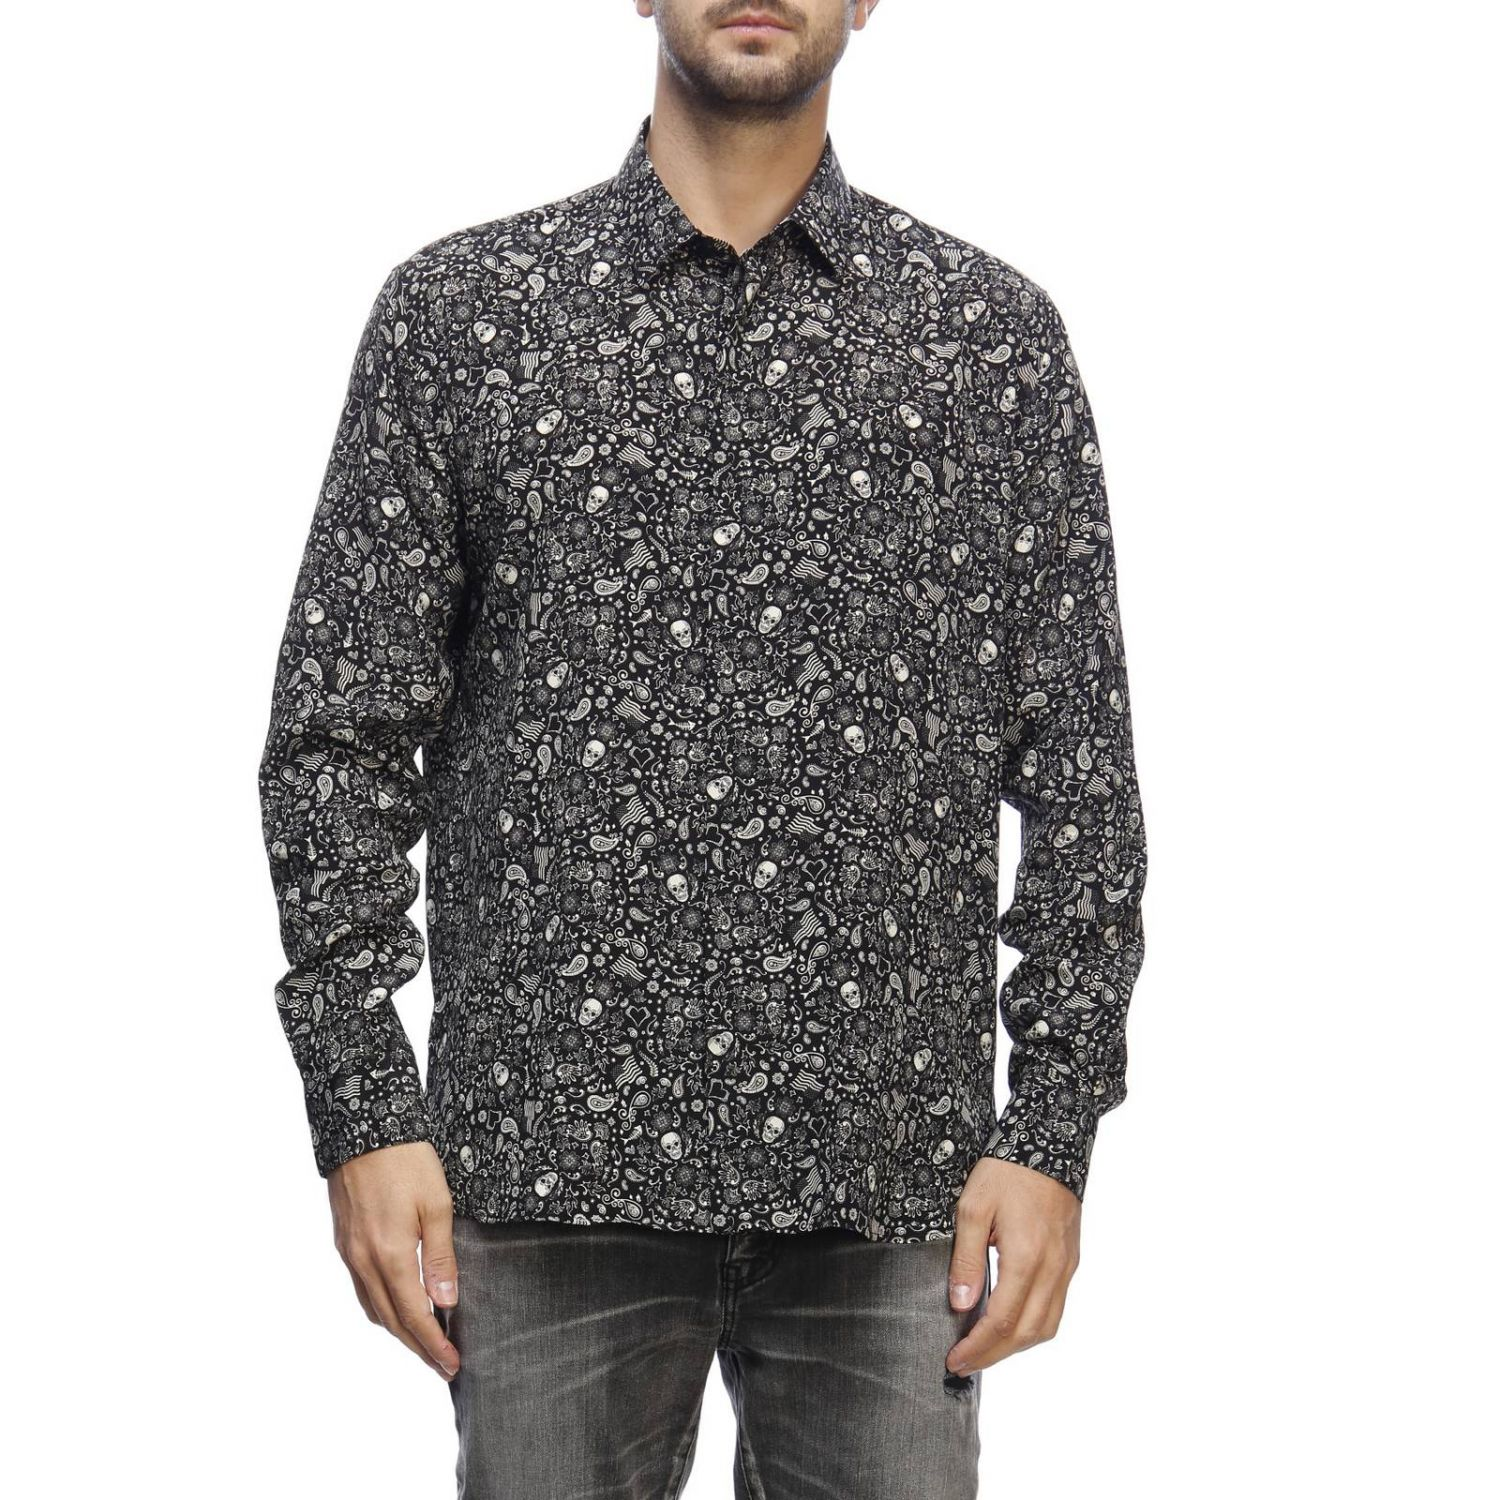 Camicia casual con stampa teschi all over nero 1